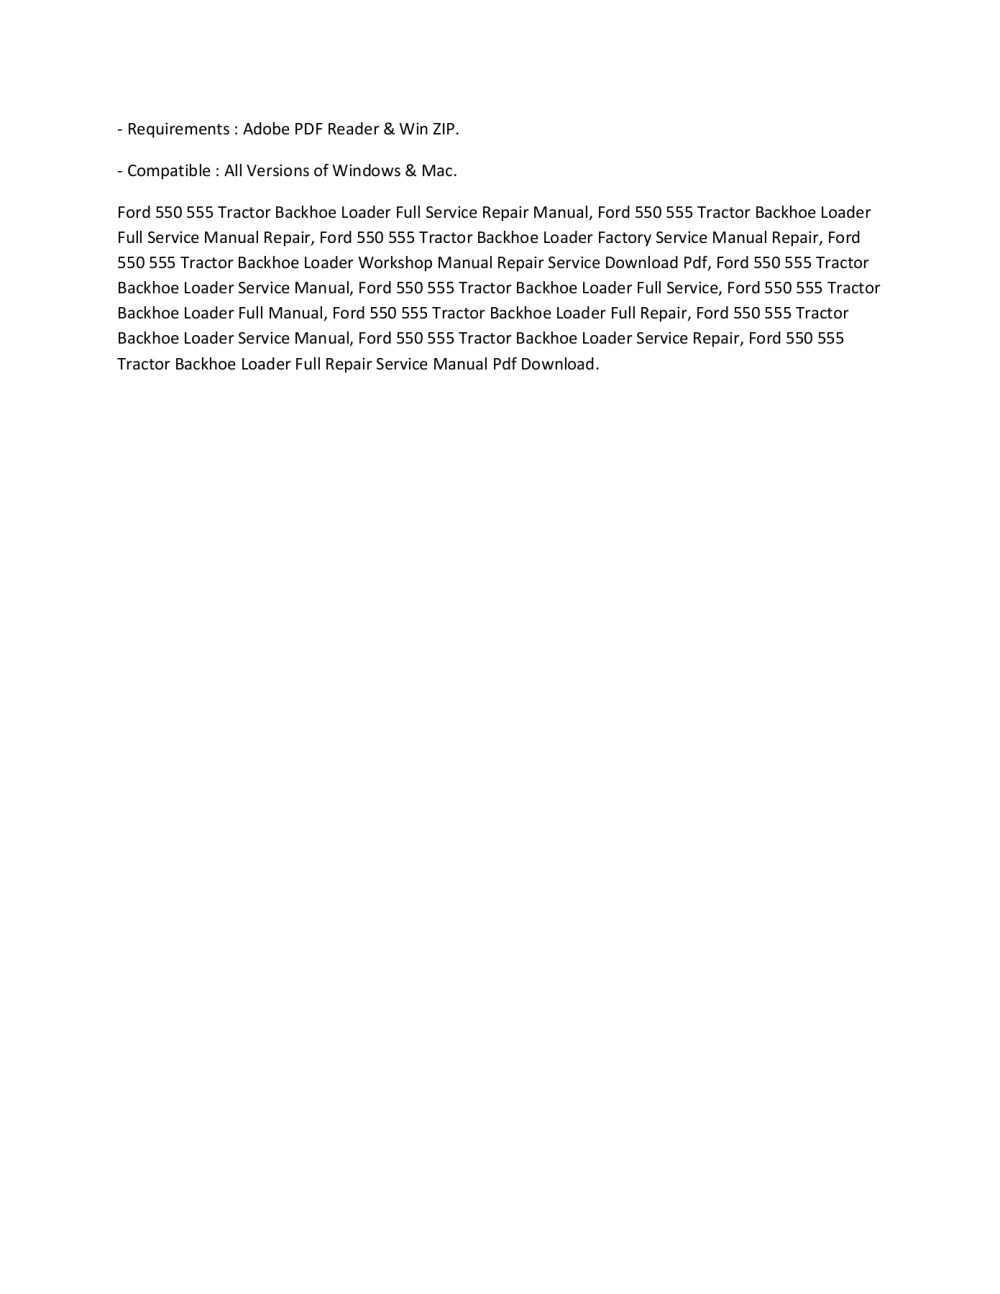 medium resolution of ford 550 555 tractor backhoe loader full service repair manual pages 1 2 text version anyflip